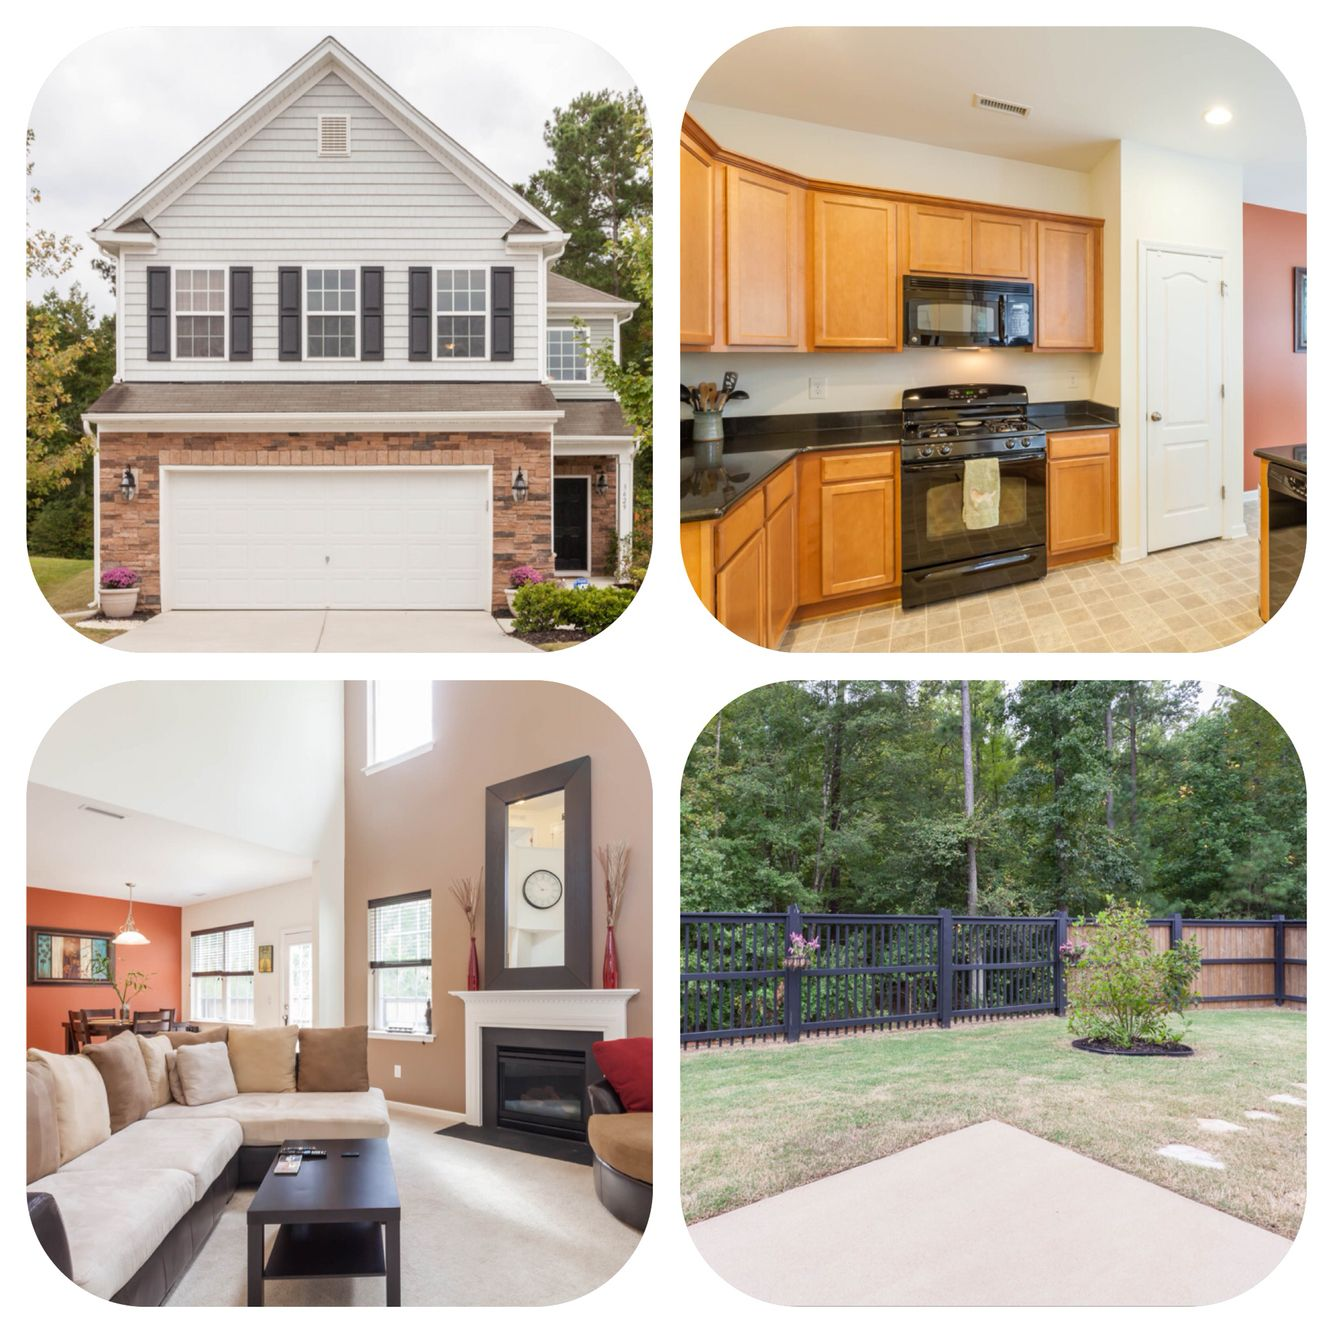 JUST LISTED!! 3629 Brideveil Ct Raleigh, NC 27610 In Tryon